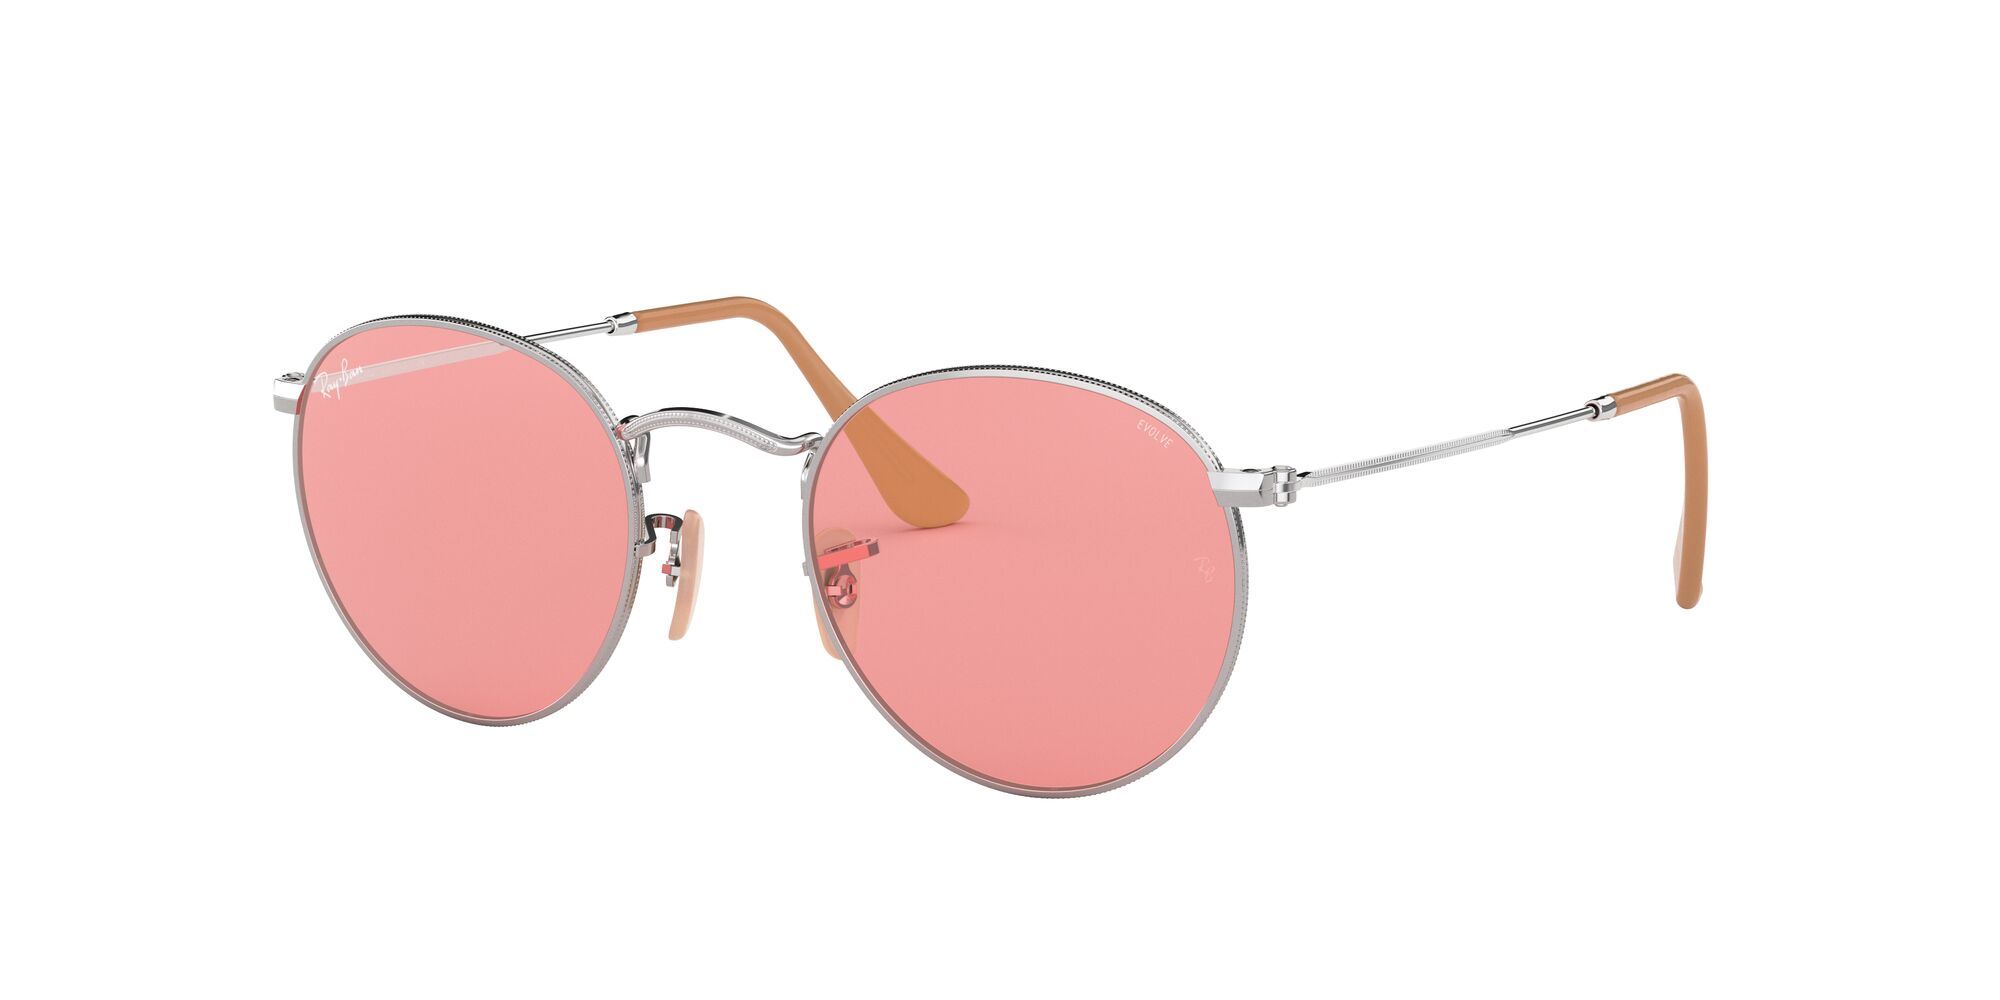 Angle_Left01 Ray-Ban Ray-Ban 0RB3447 9065V7 53/21 Zilver/Roze